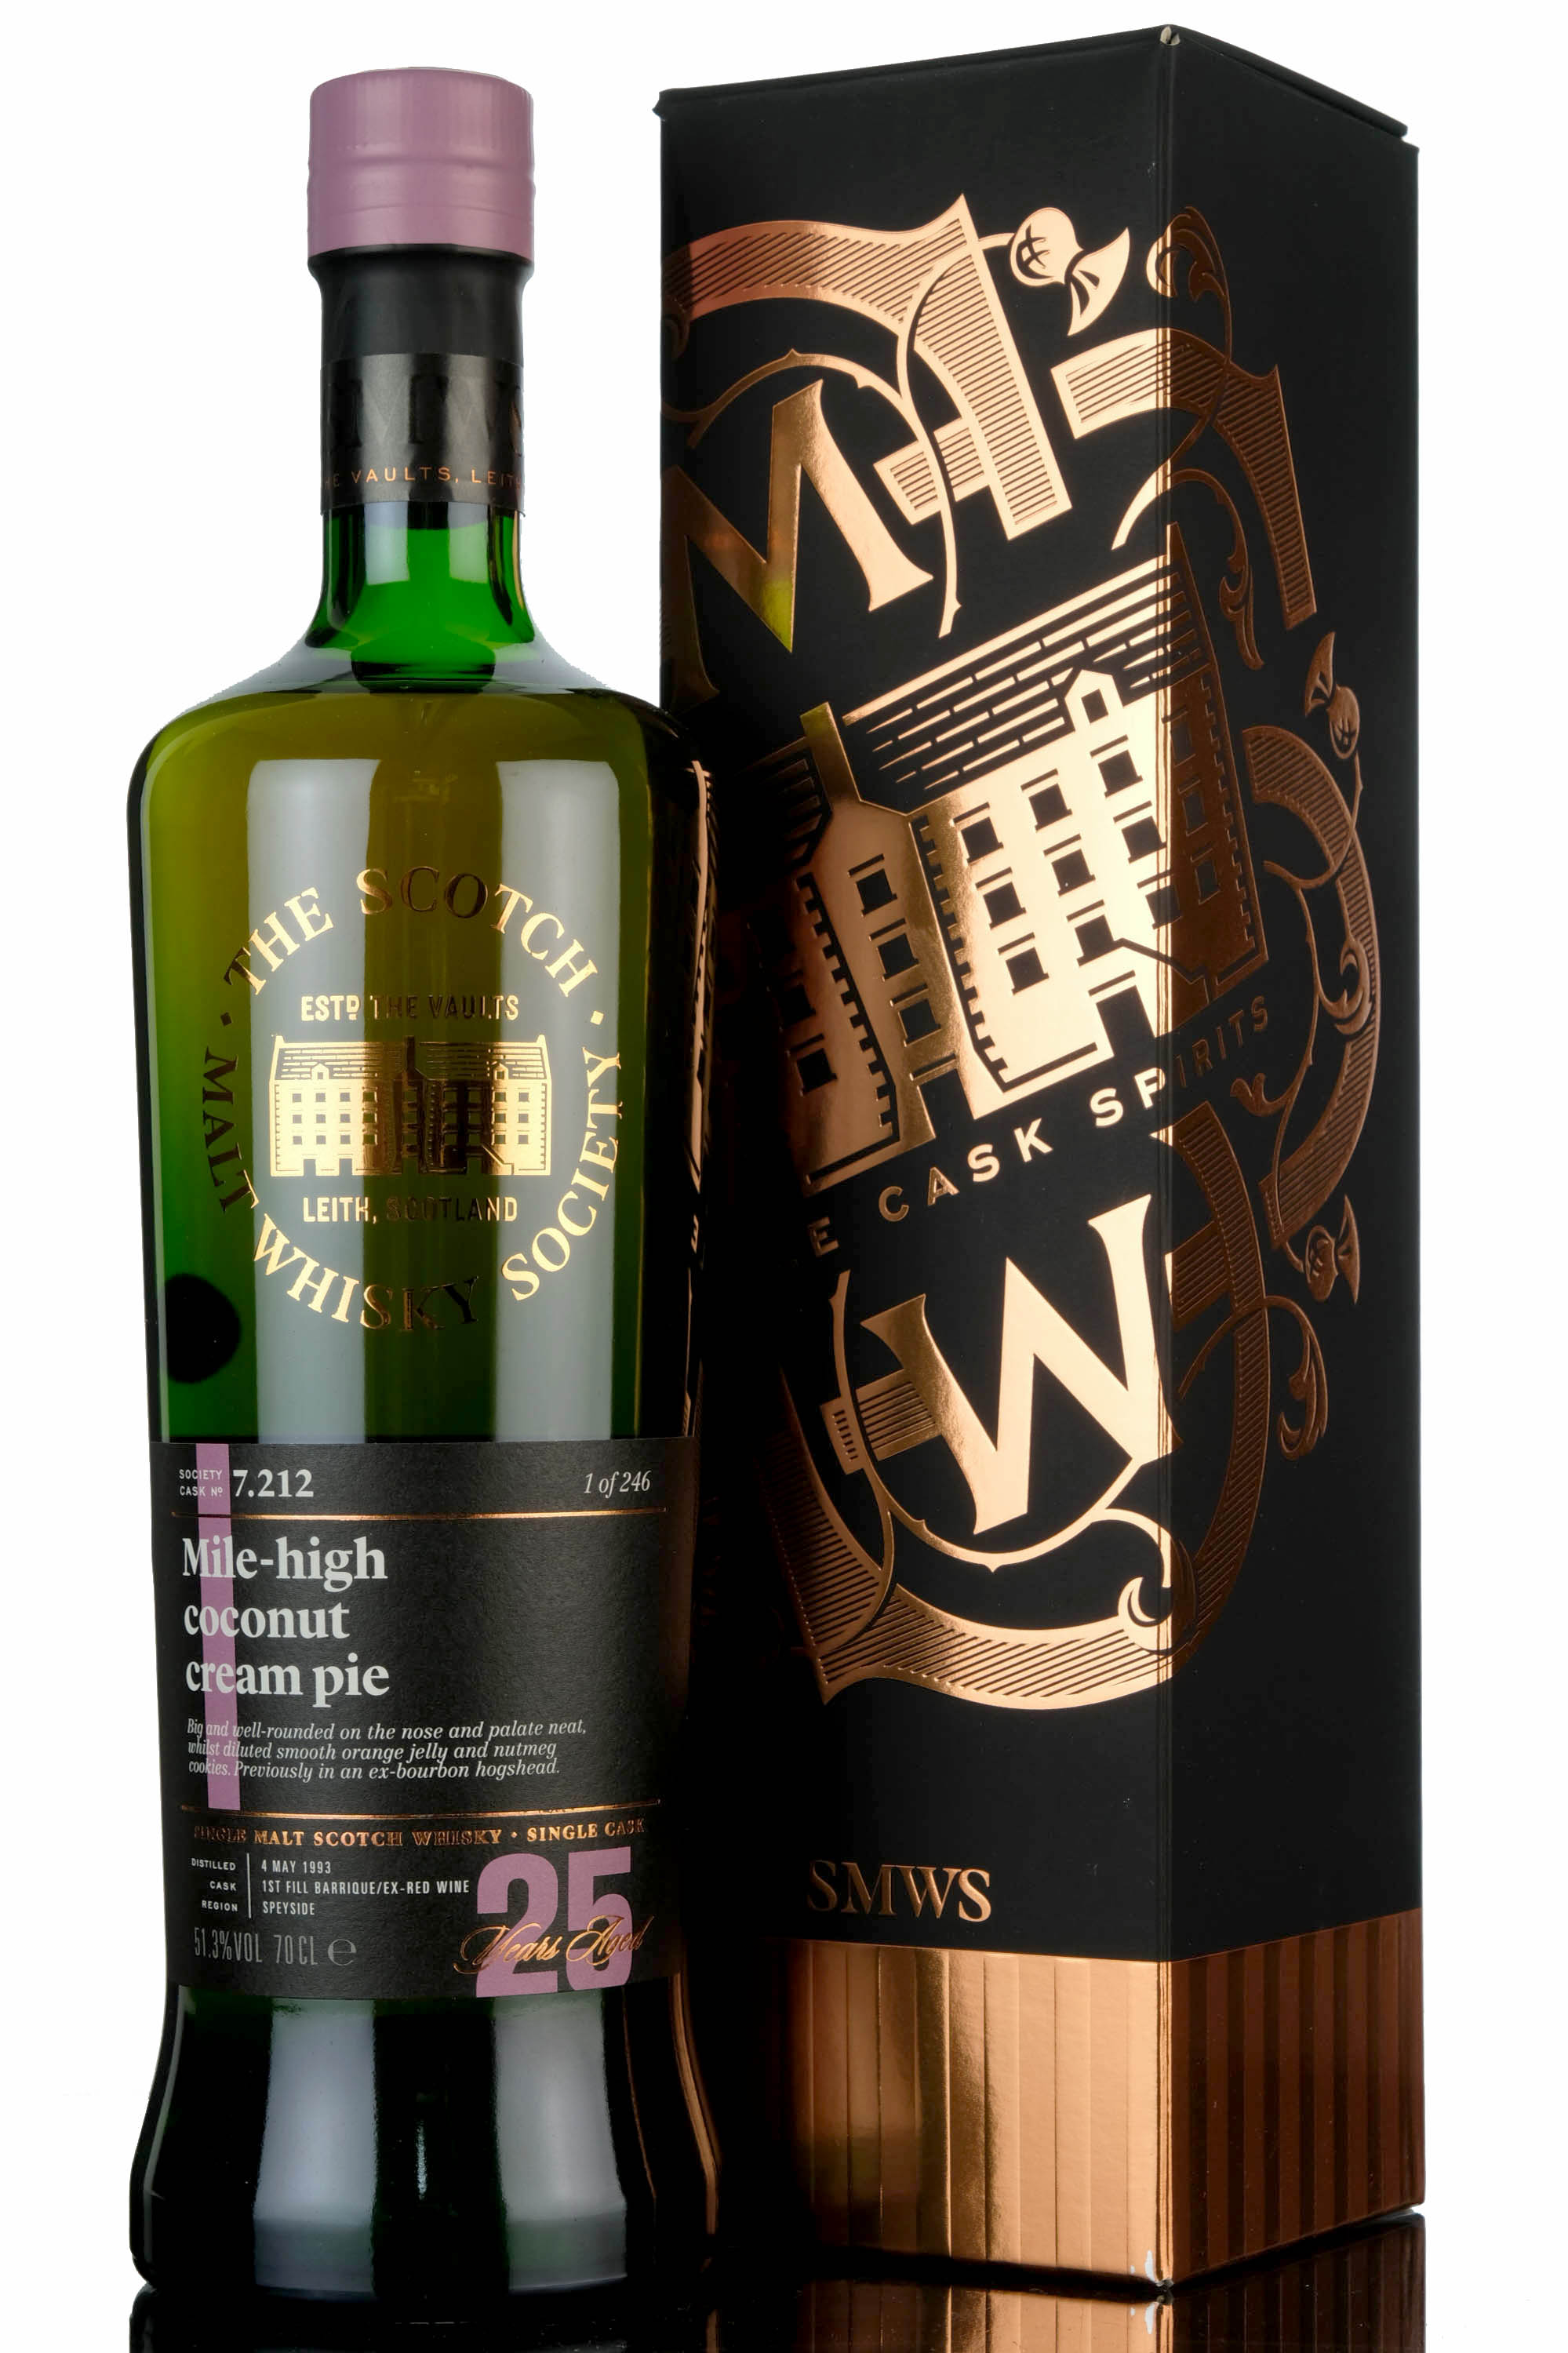 longmorn 1993 - 25 year old - smws 7.212 - mile-high coconut cream pie